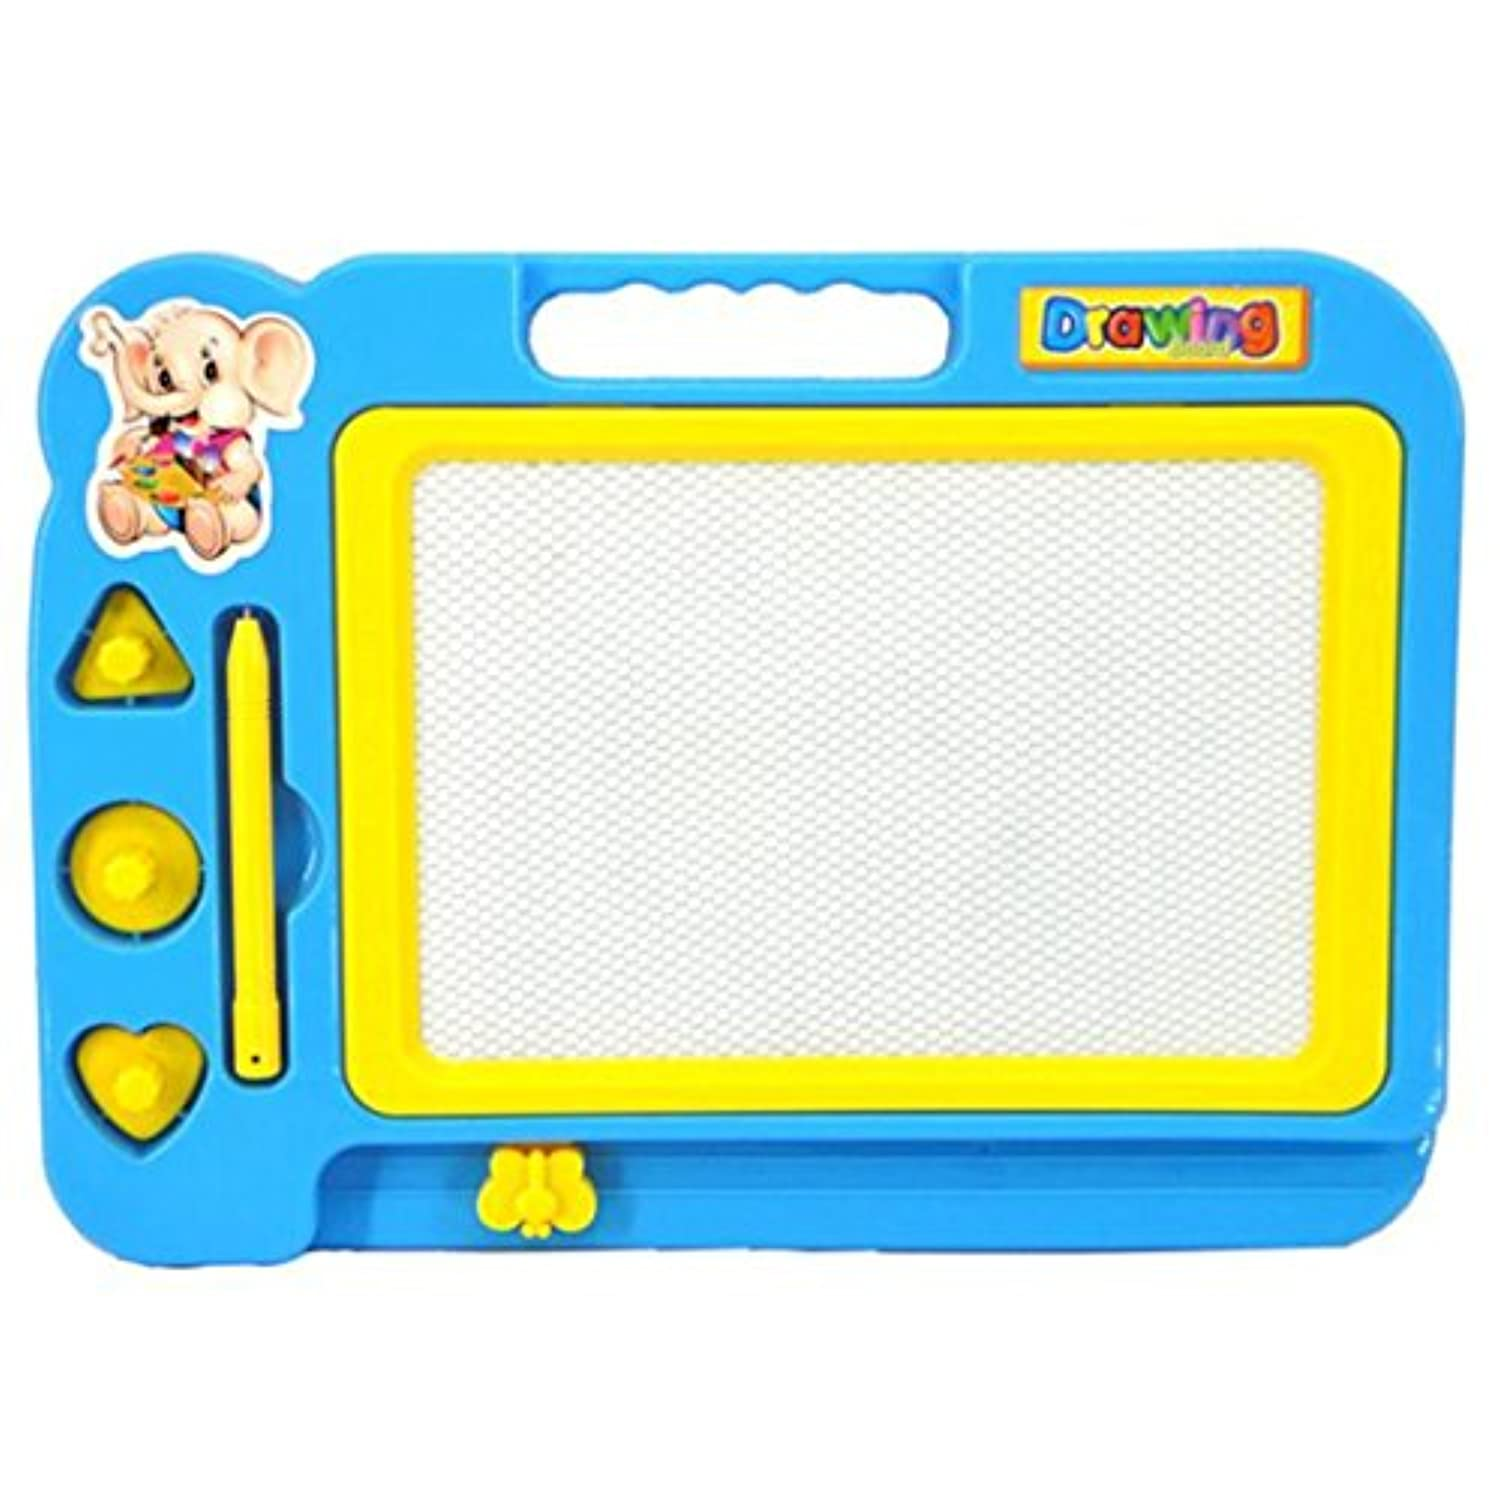 DEESEE(TM) Children Kid Magnetic Writing Painting Drawing Graffiti Board Toy Preschool Tool Christmas Gift